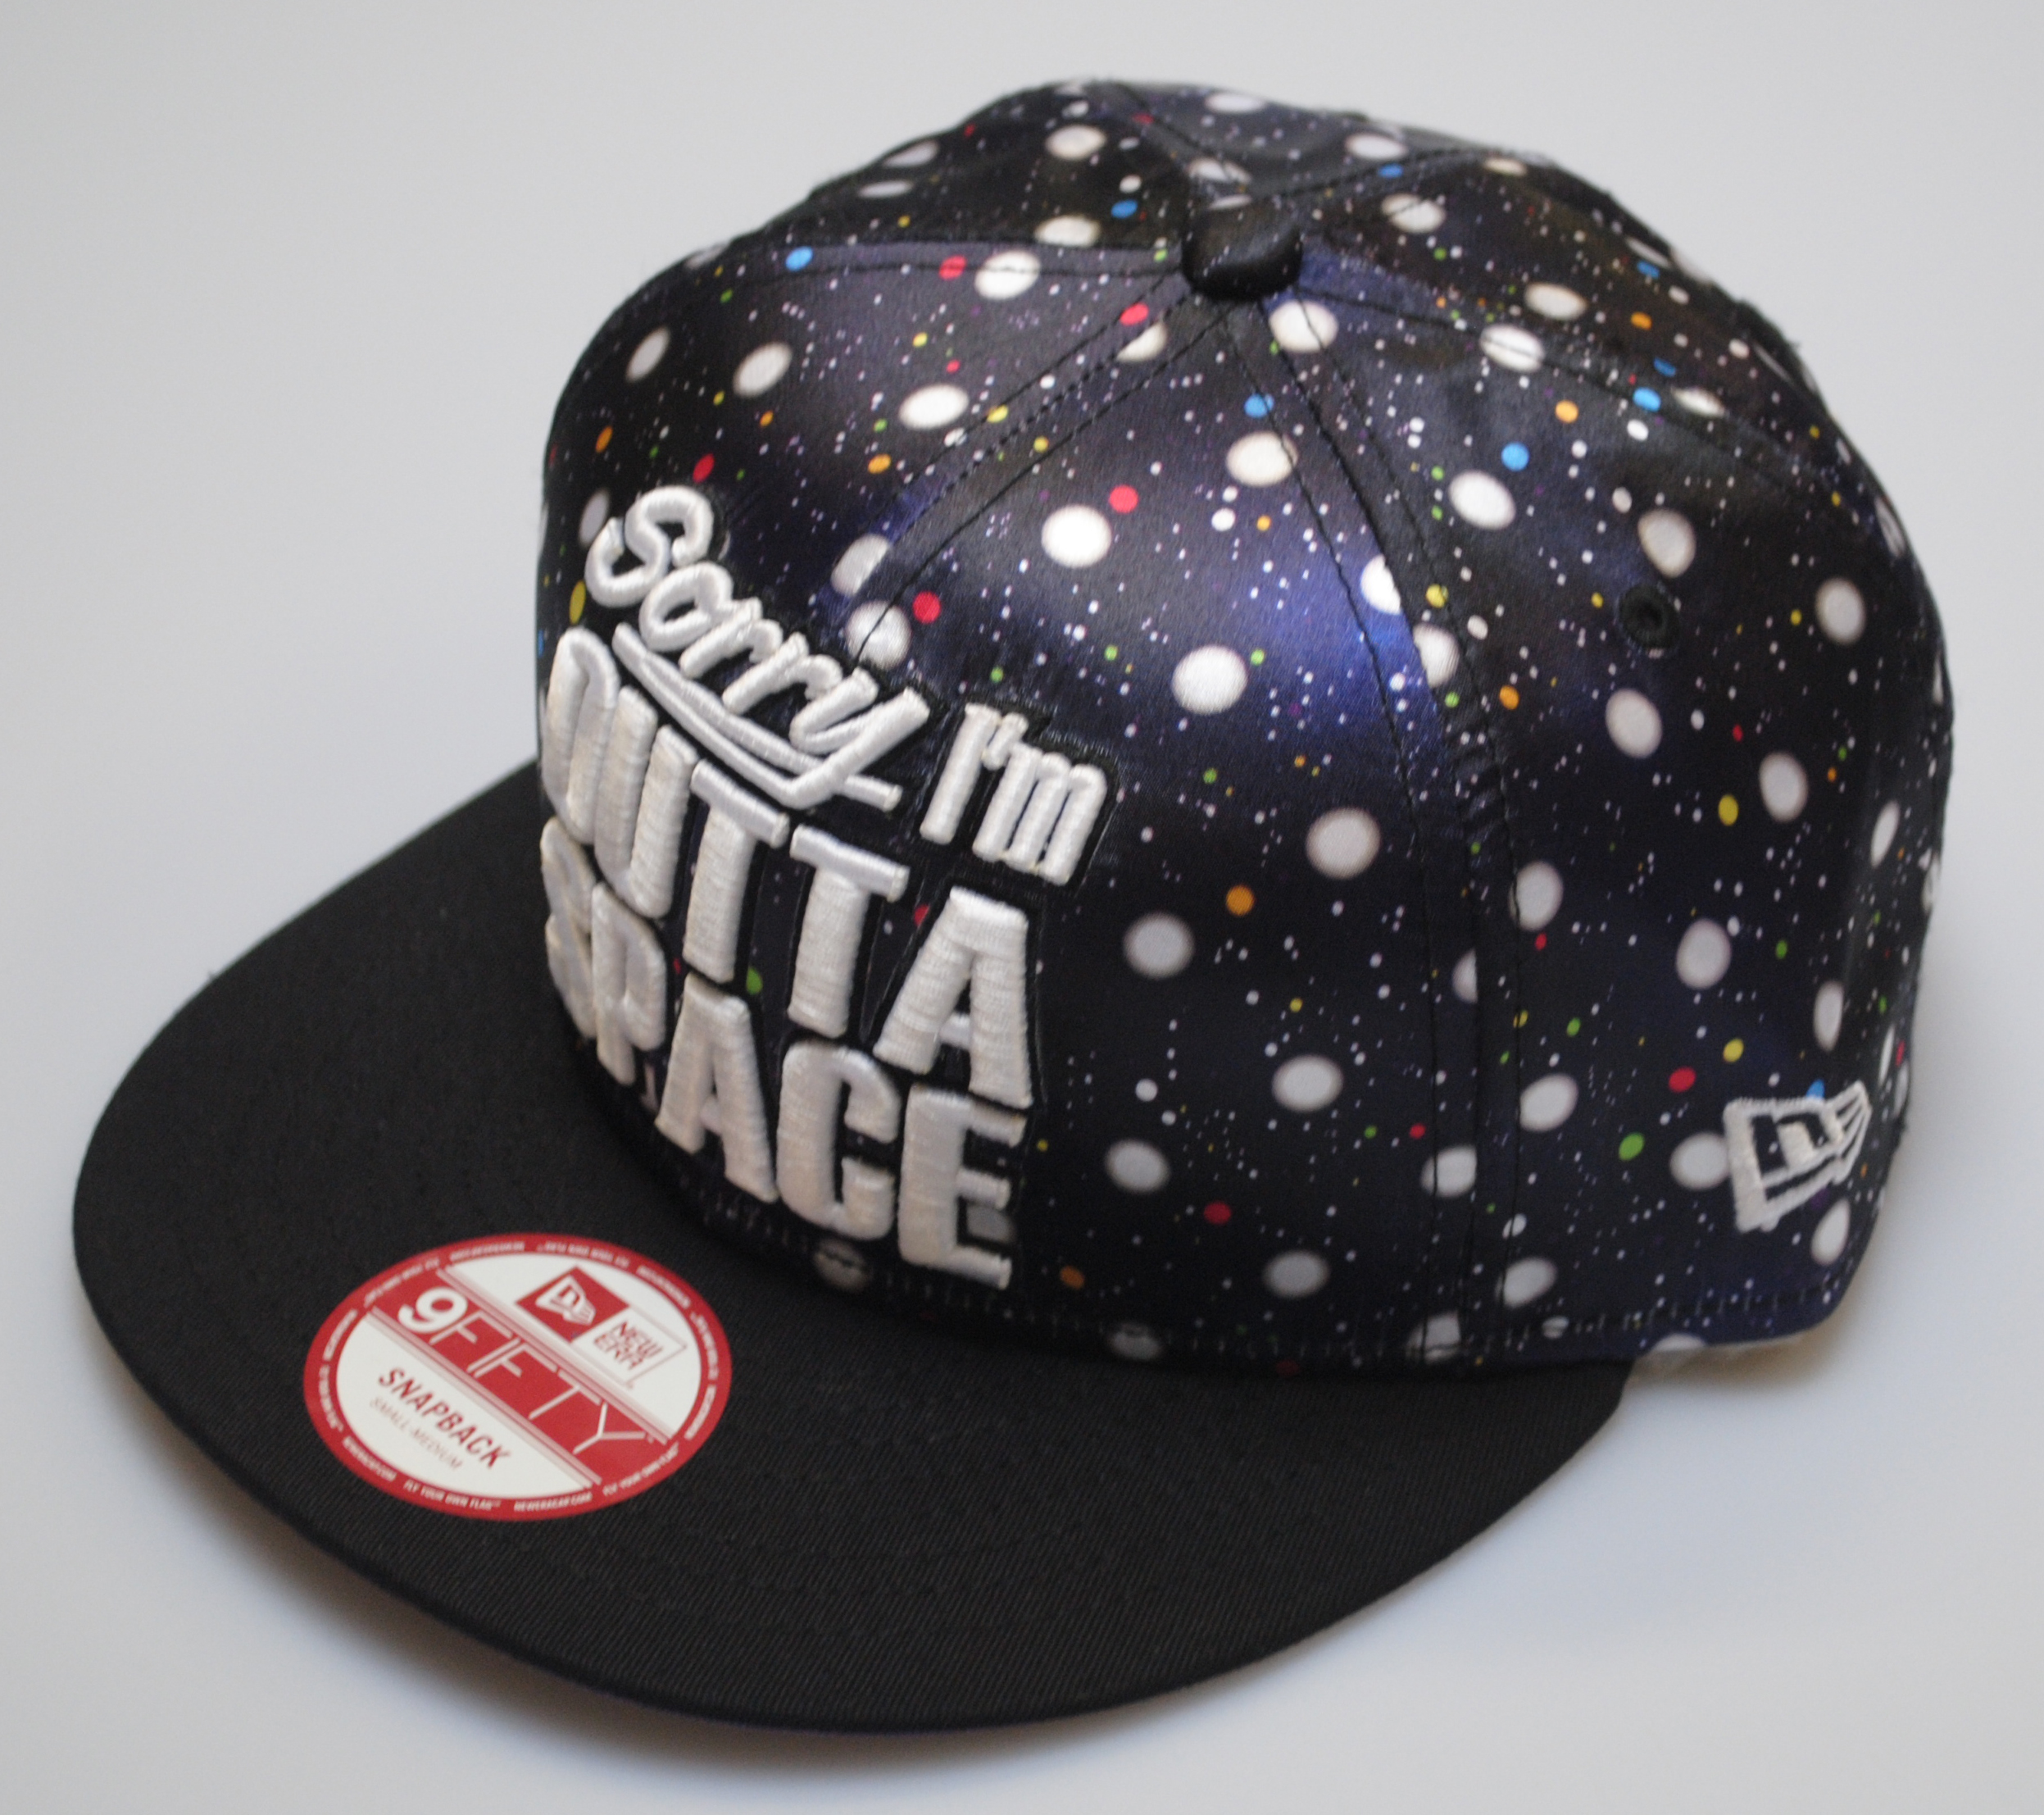 New Era 9fifty Sorry I'm Outta Space Hat Satin Black Baseball Snapback Cap S/M